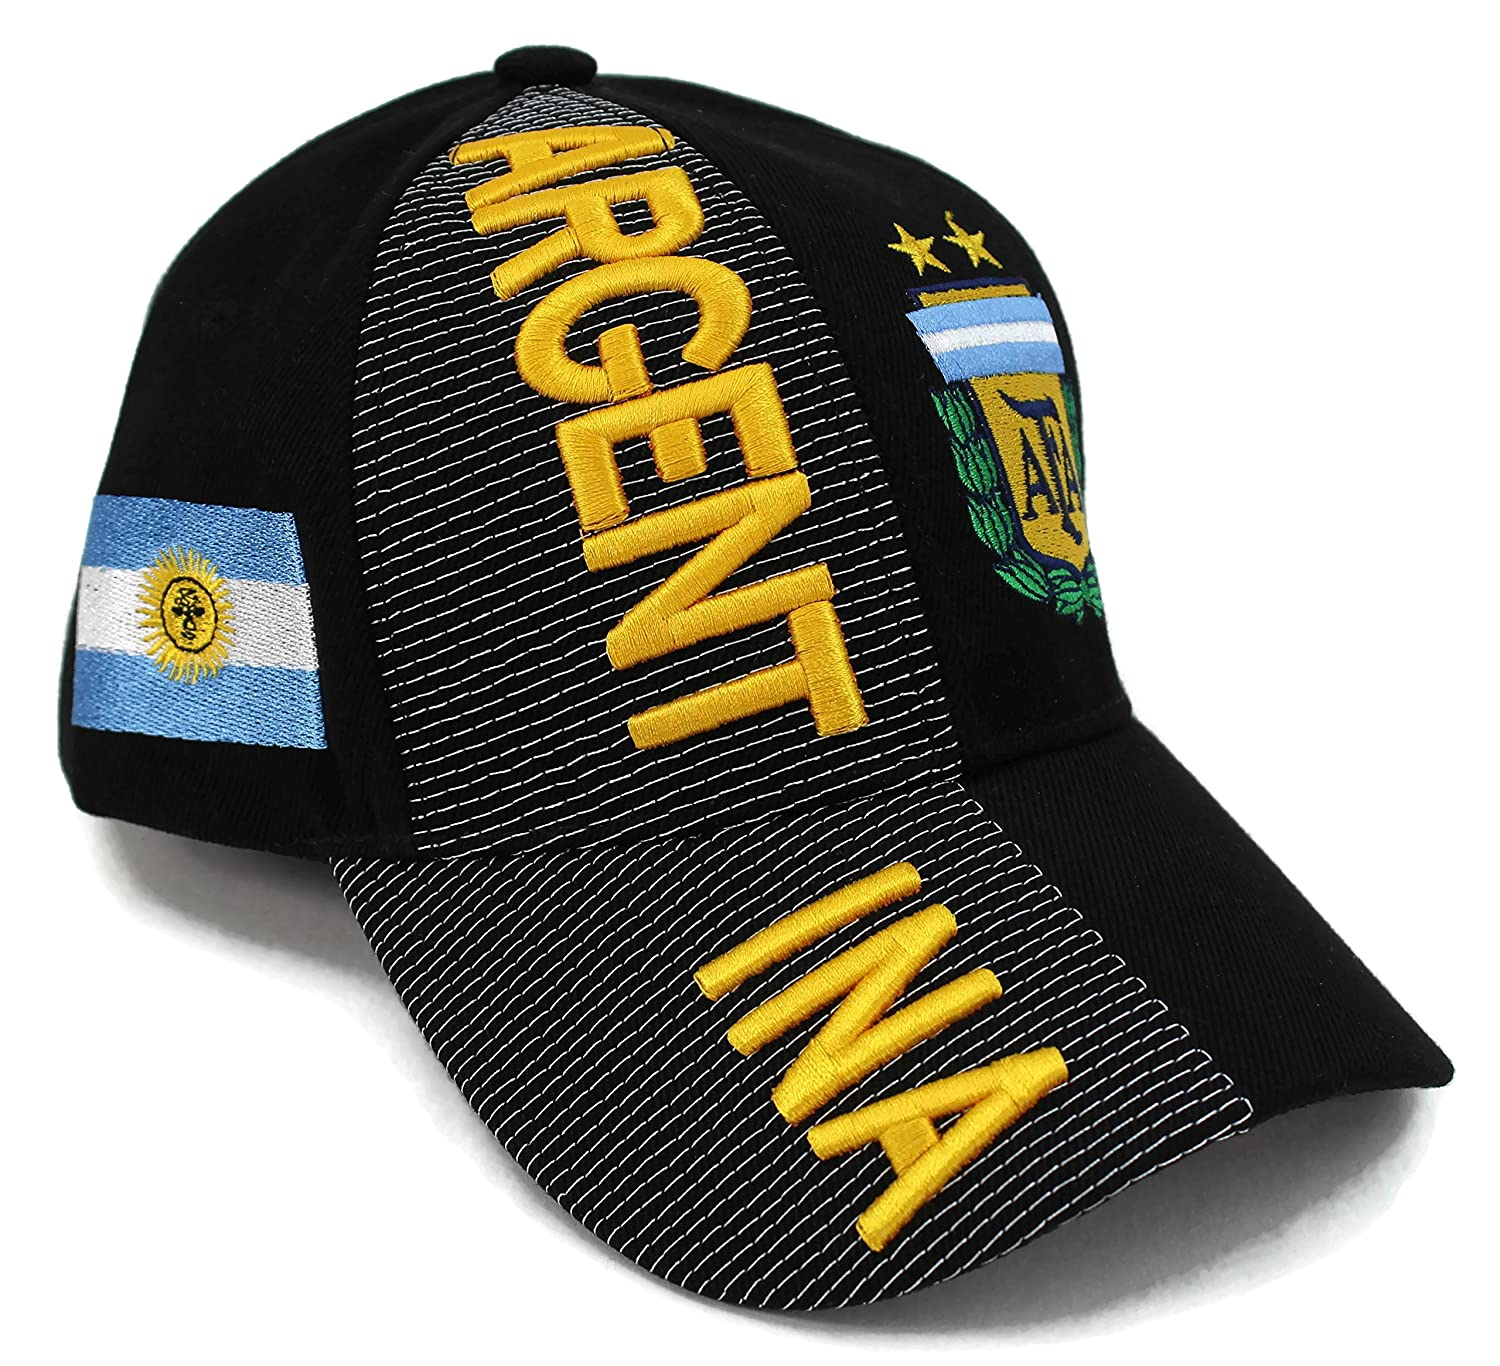 e3253598714 High end hats nations of south america hat collection jpg 1500x1366 High  end hat